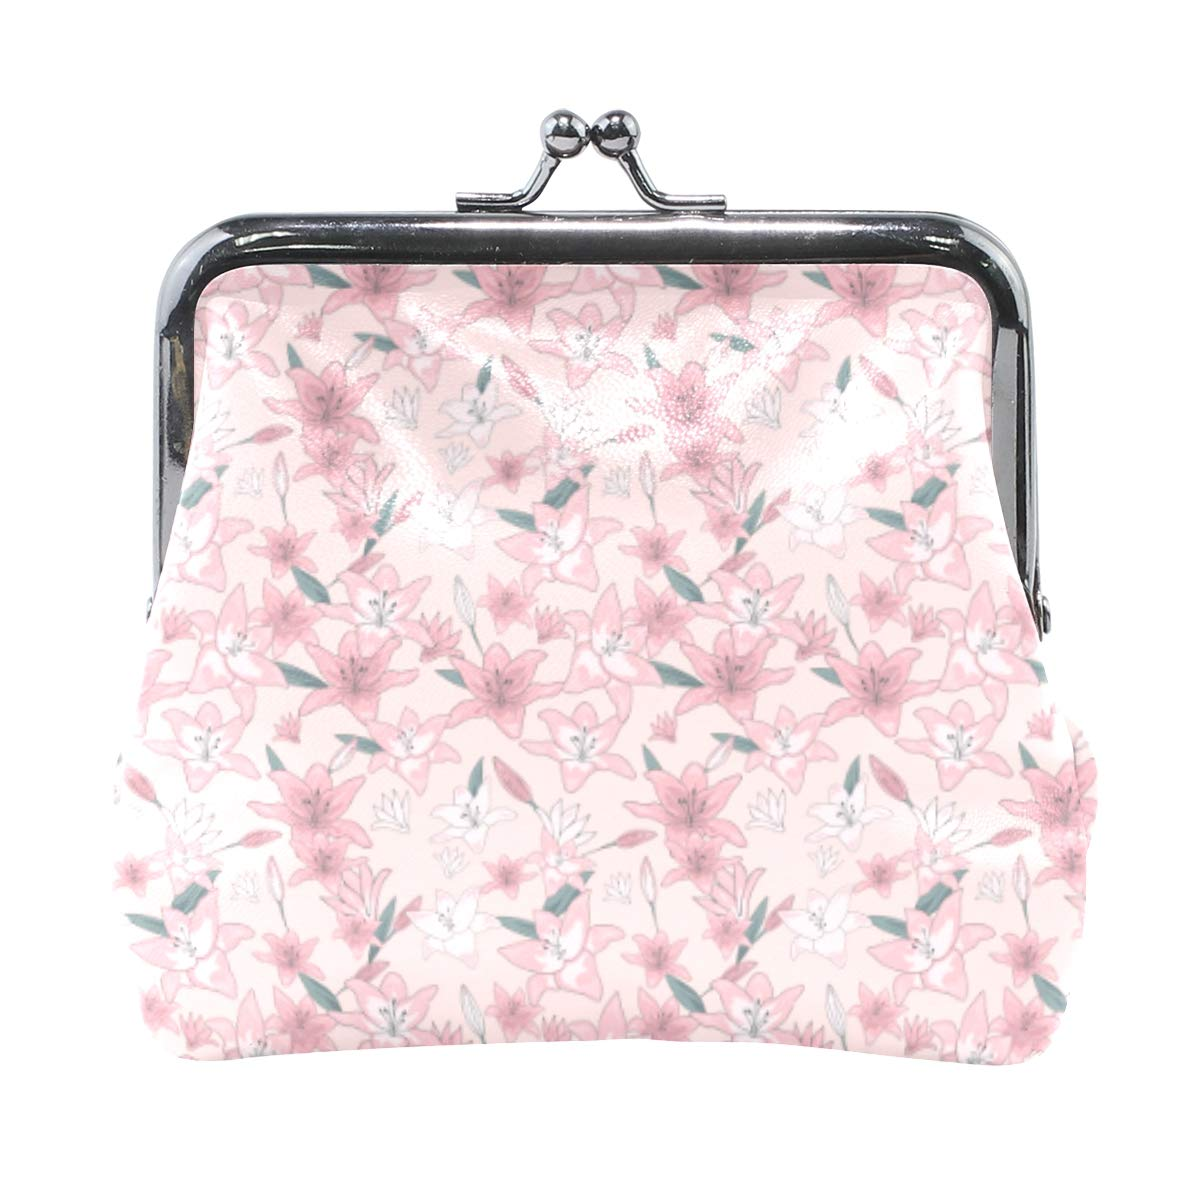 Exquisite Buckle Coin Purses Blossom Floral Lily Flowers Pattern Mini Wallet Key Card Holder Purse for Women